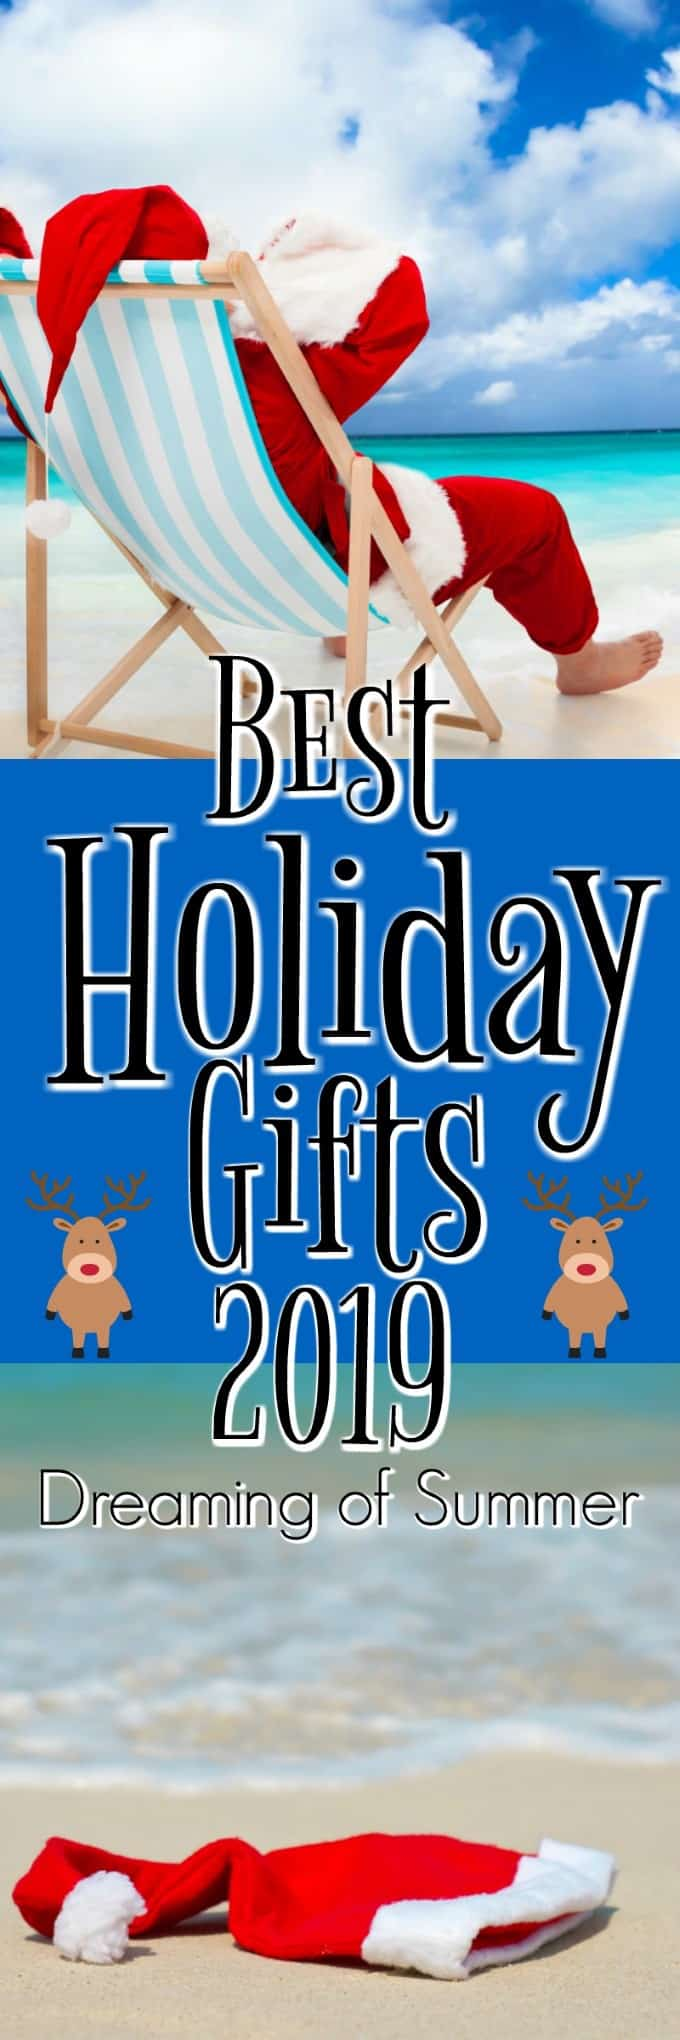 Best Holiday Gifts 2019 will have you Dreaming of Summer with this collection of amazing items to buy for yourself or give as a gift. #giftguide #holiday #Christmas